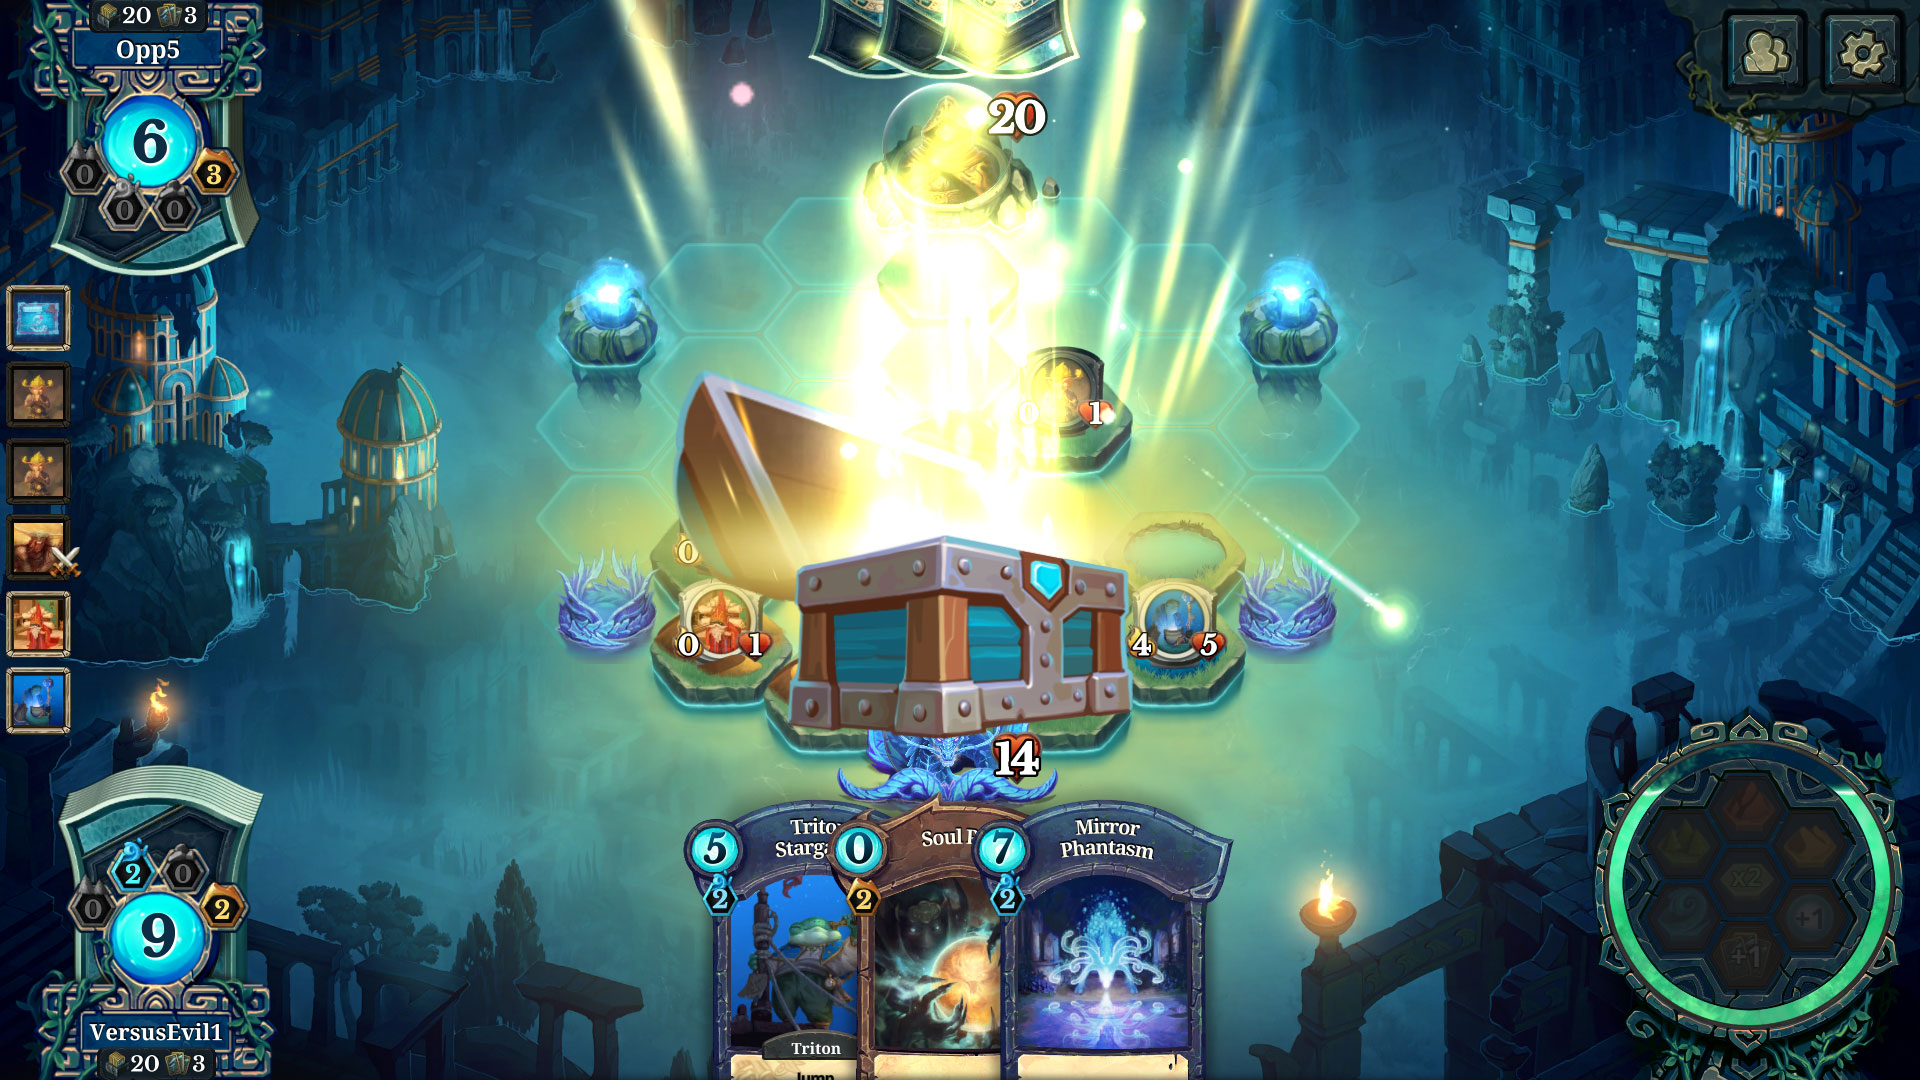 FAERIA EPIC UPDATES: Free Next Week, Patch Notes, and Tournaments